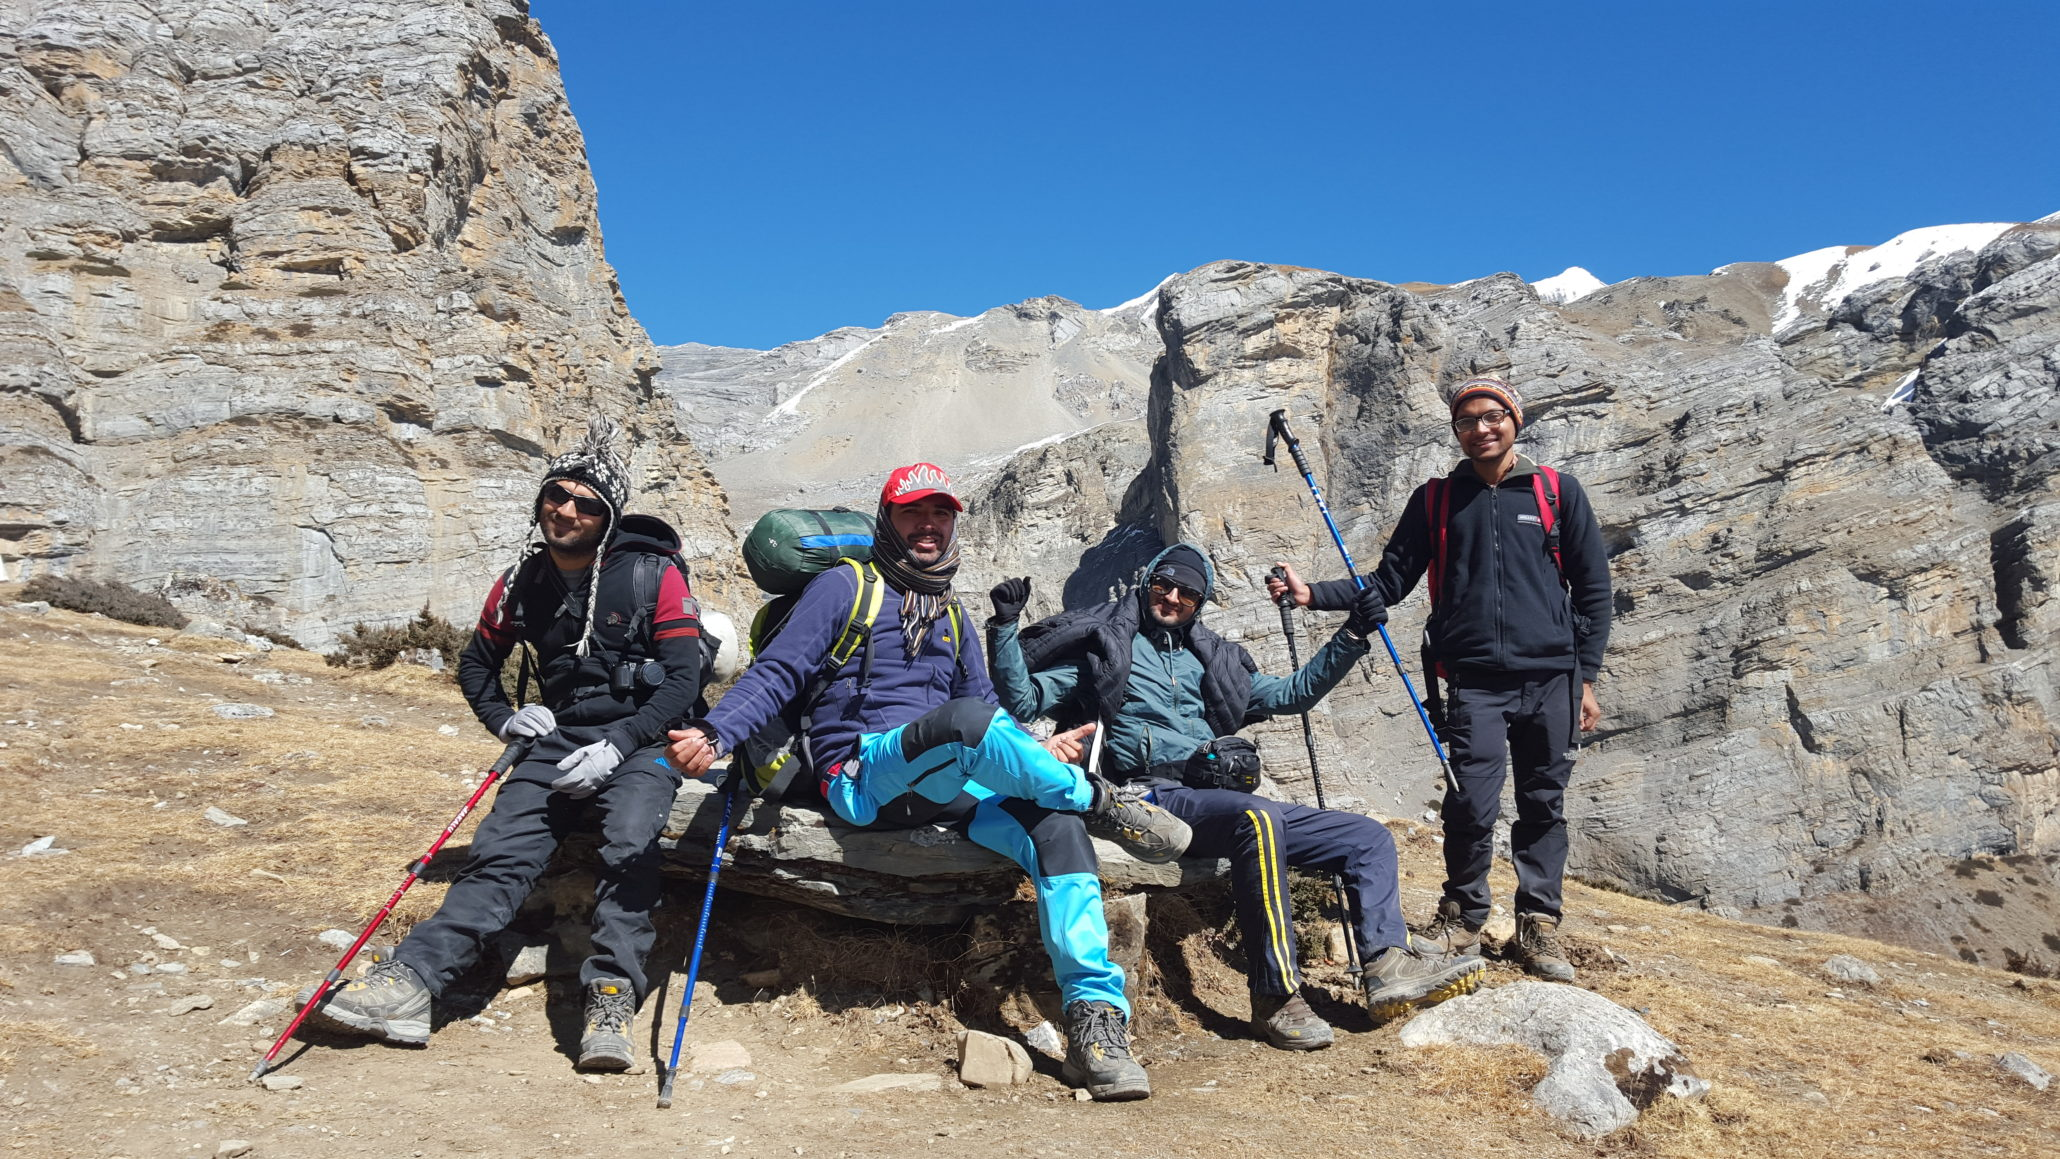 a group of 4 trekkers on a rock and behind them are himalayas mountains